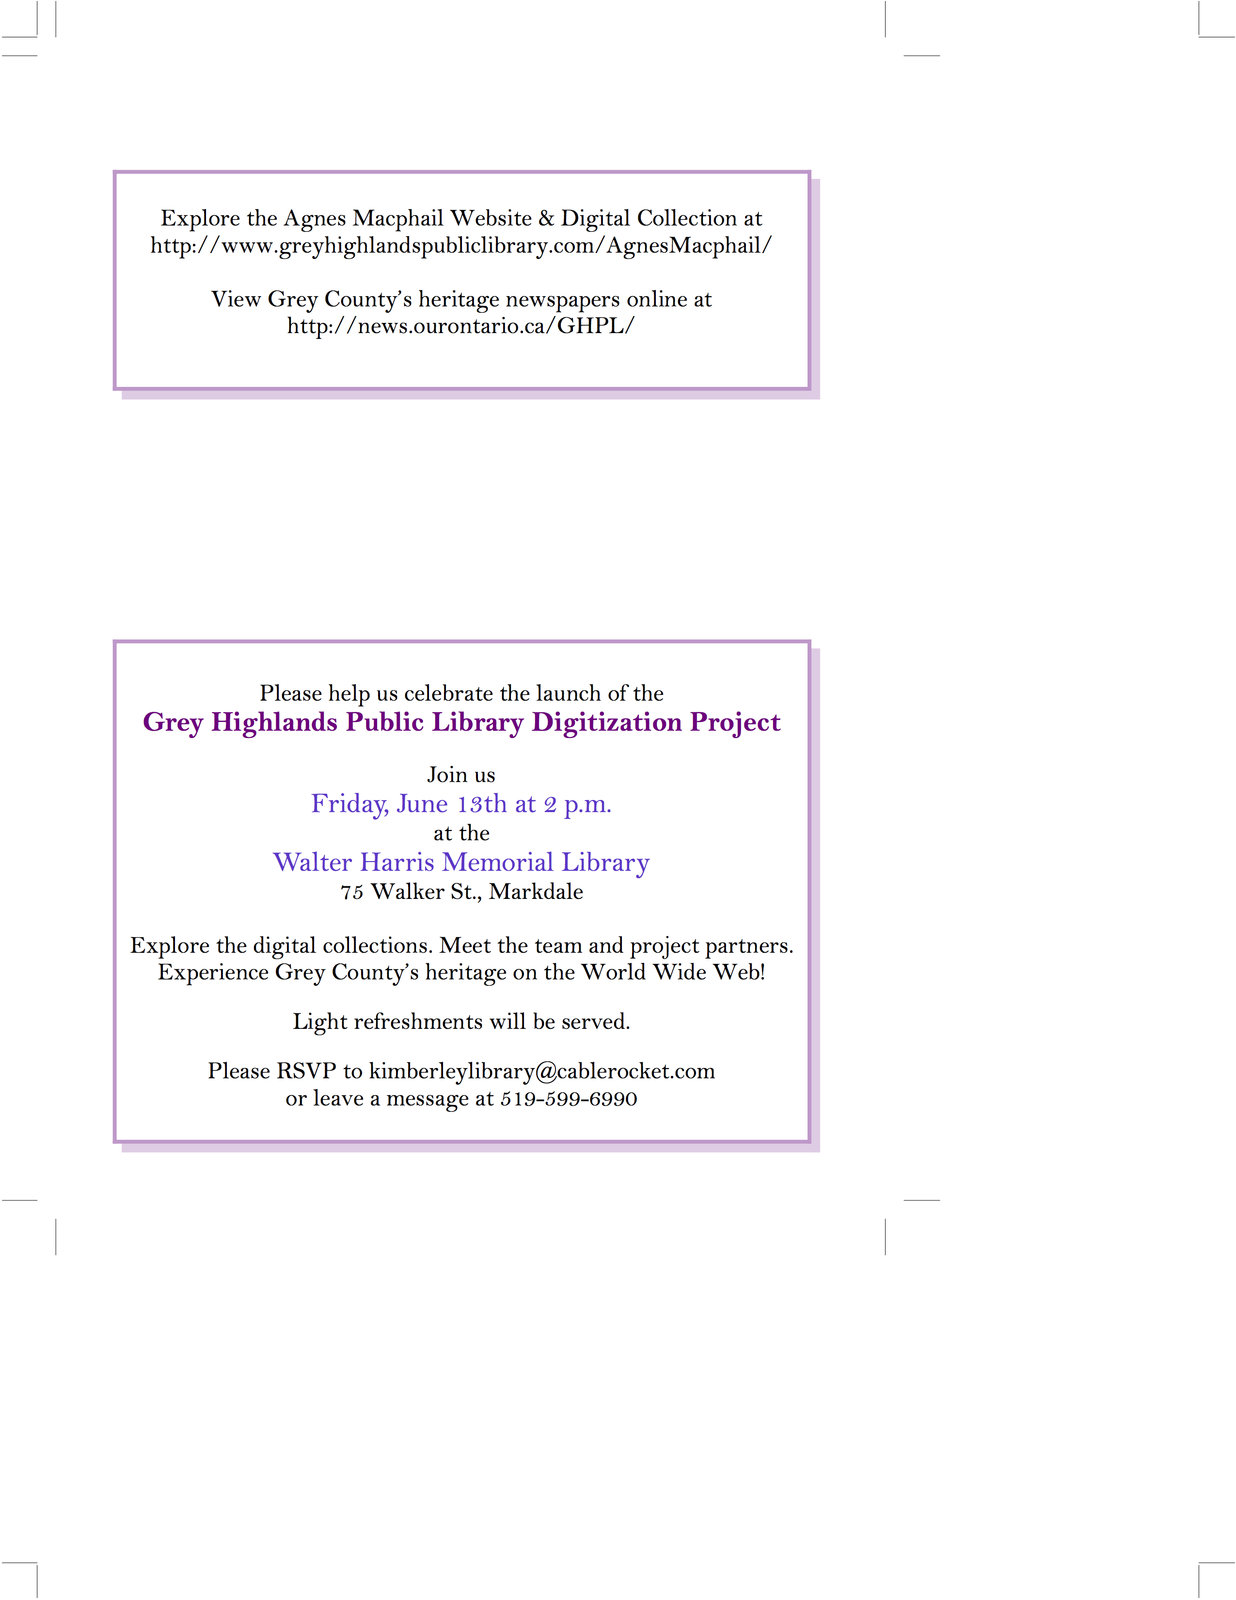 Grey Highlands Public Library, Digitization Project Launch Invitation